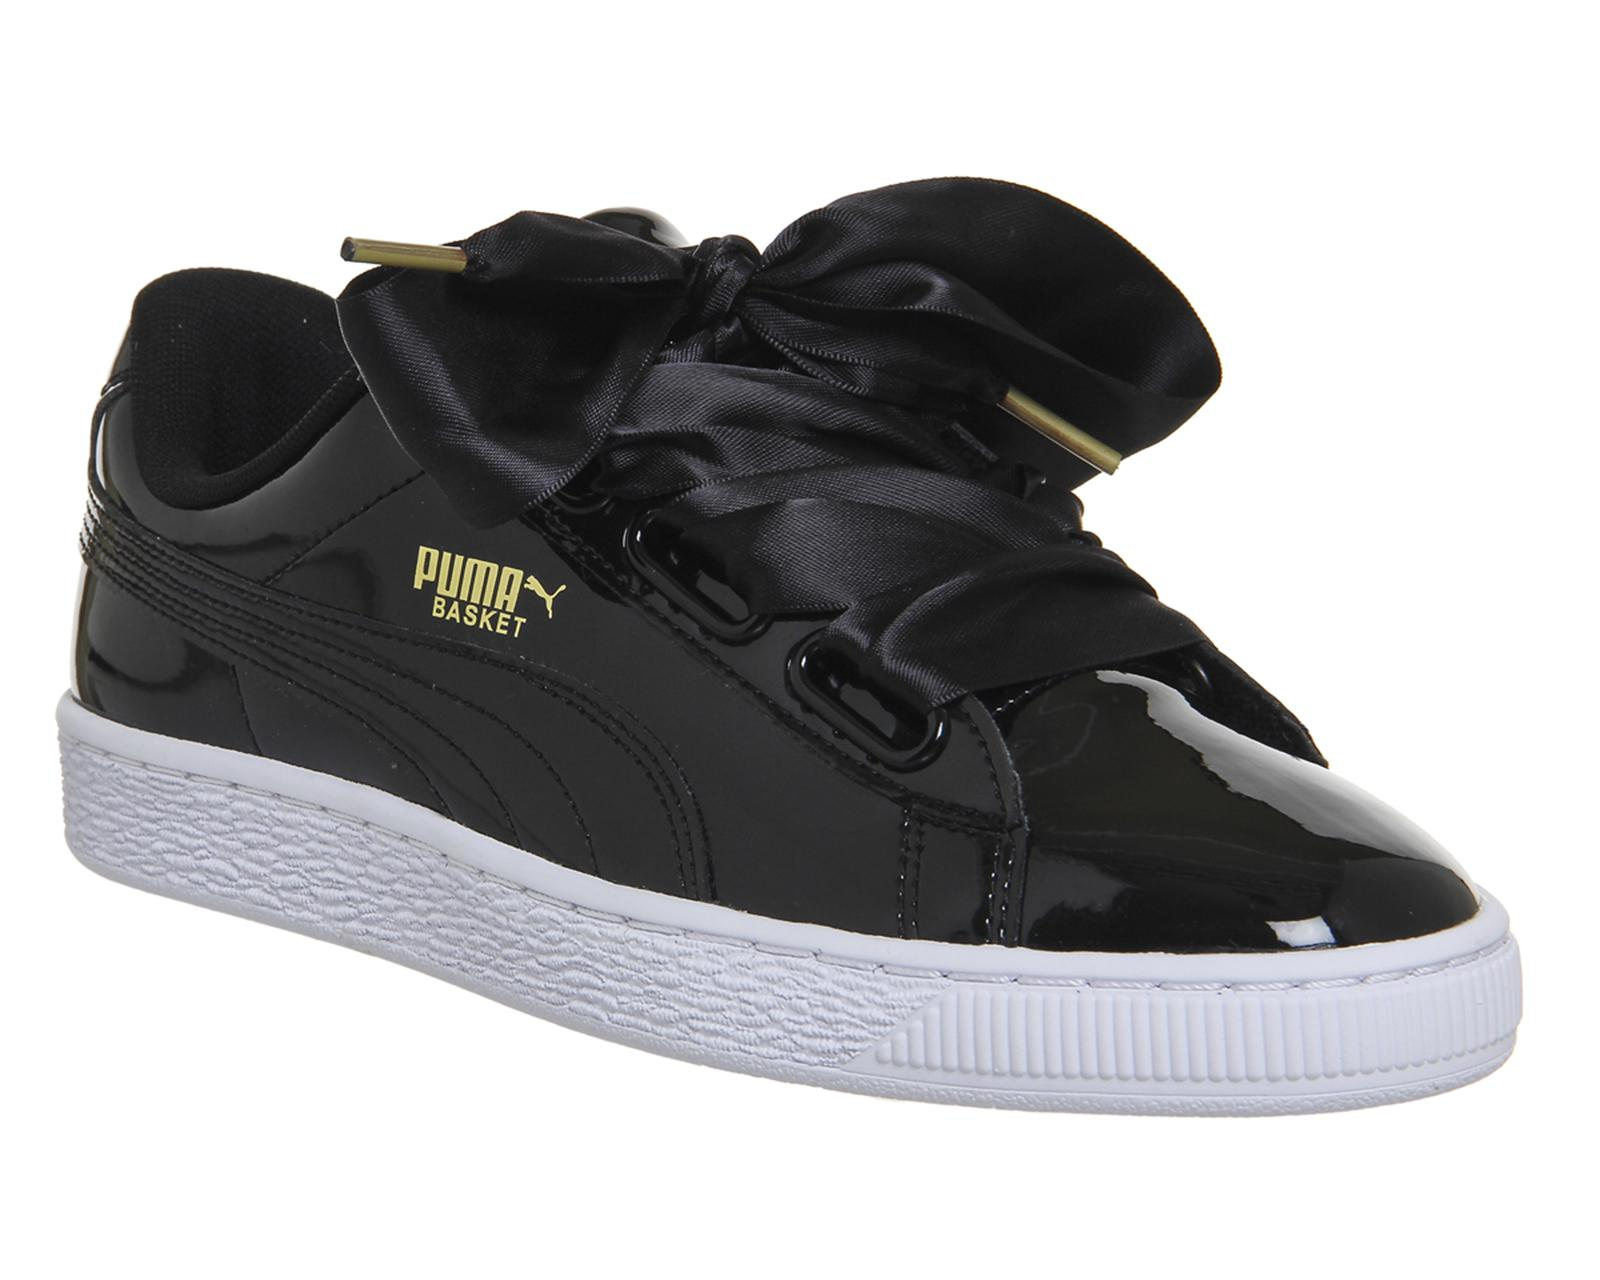 00c65ff5124 PUMA Basket Heart Trainers in Black - Lyst